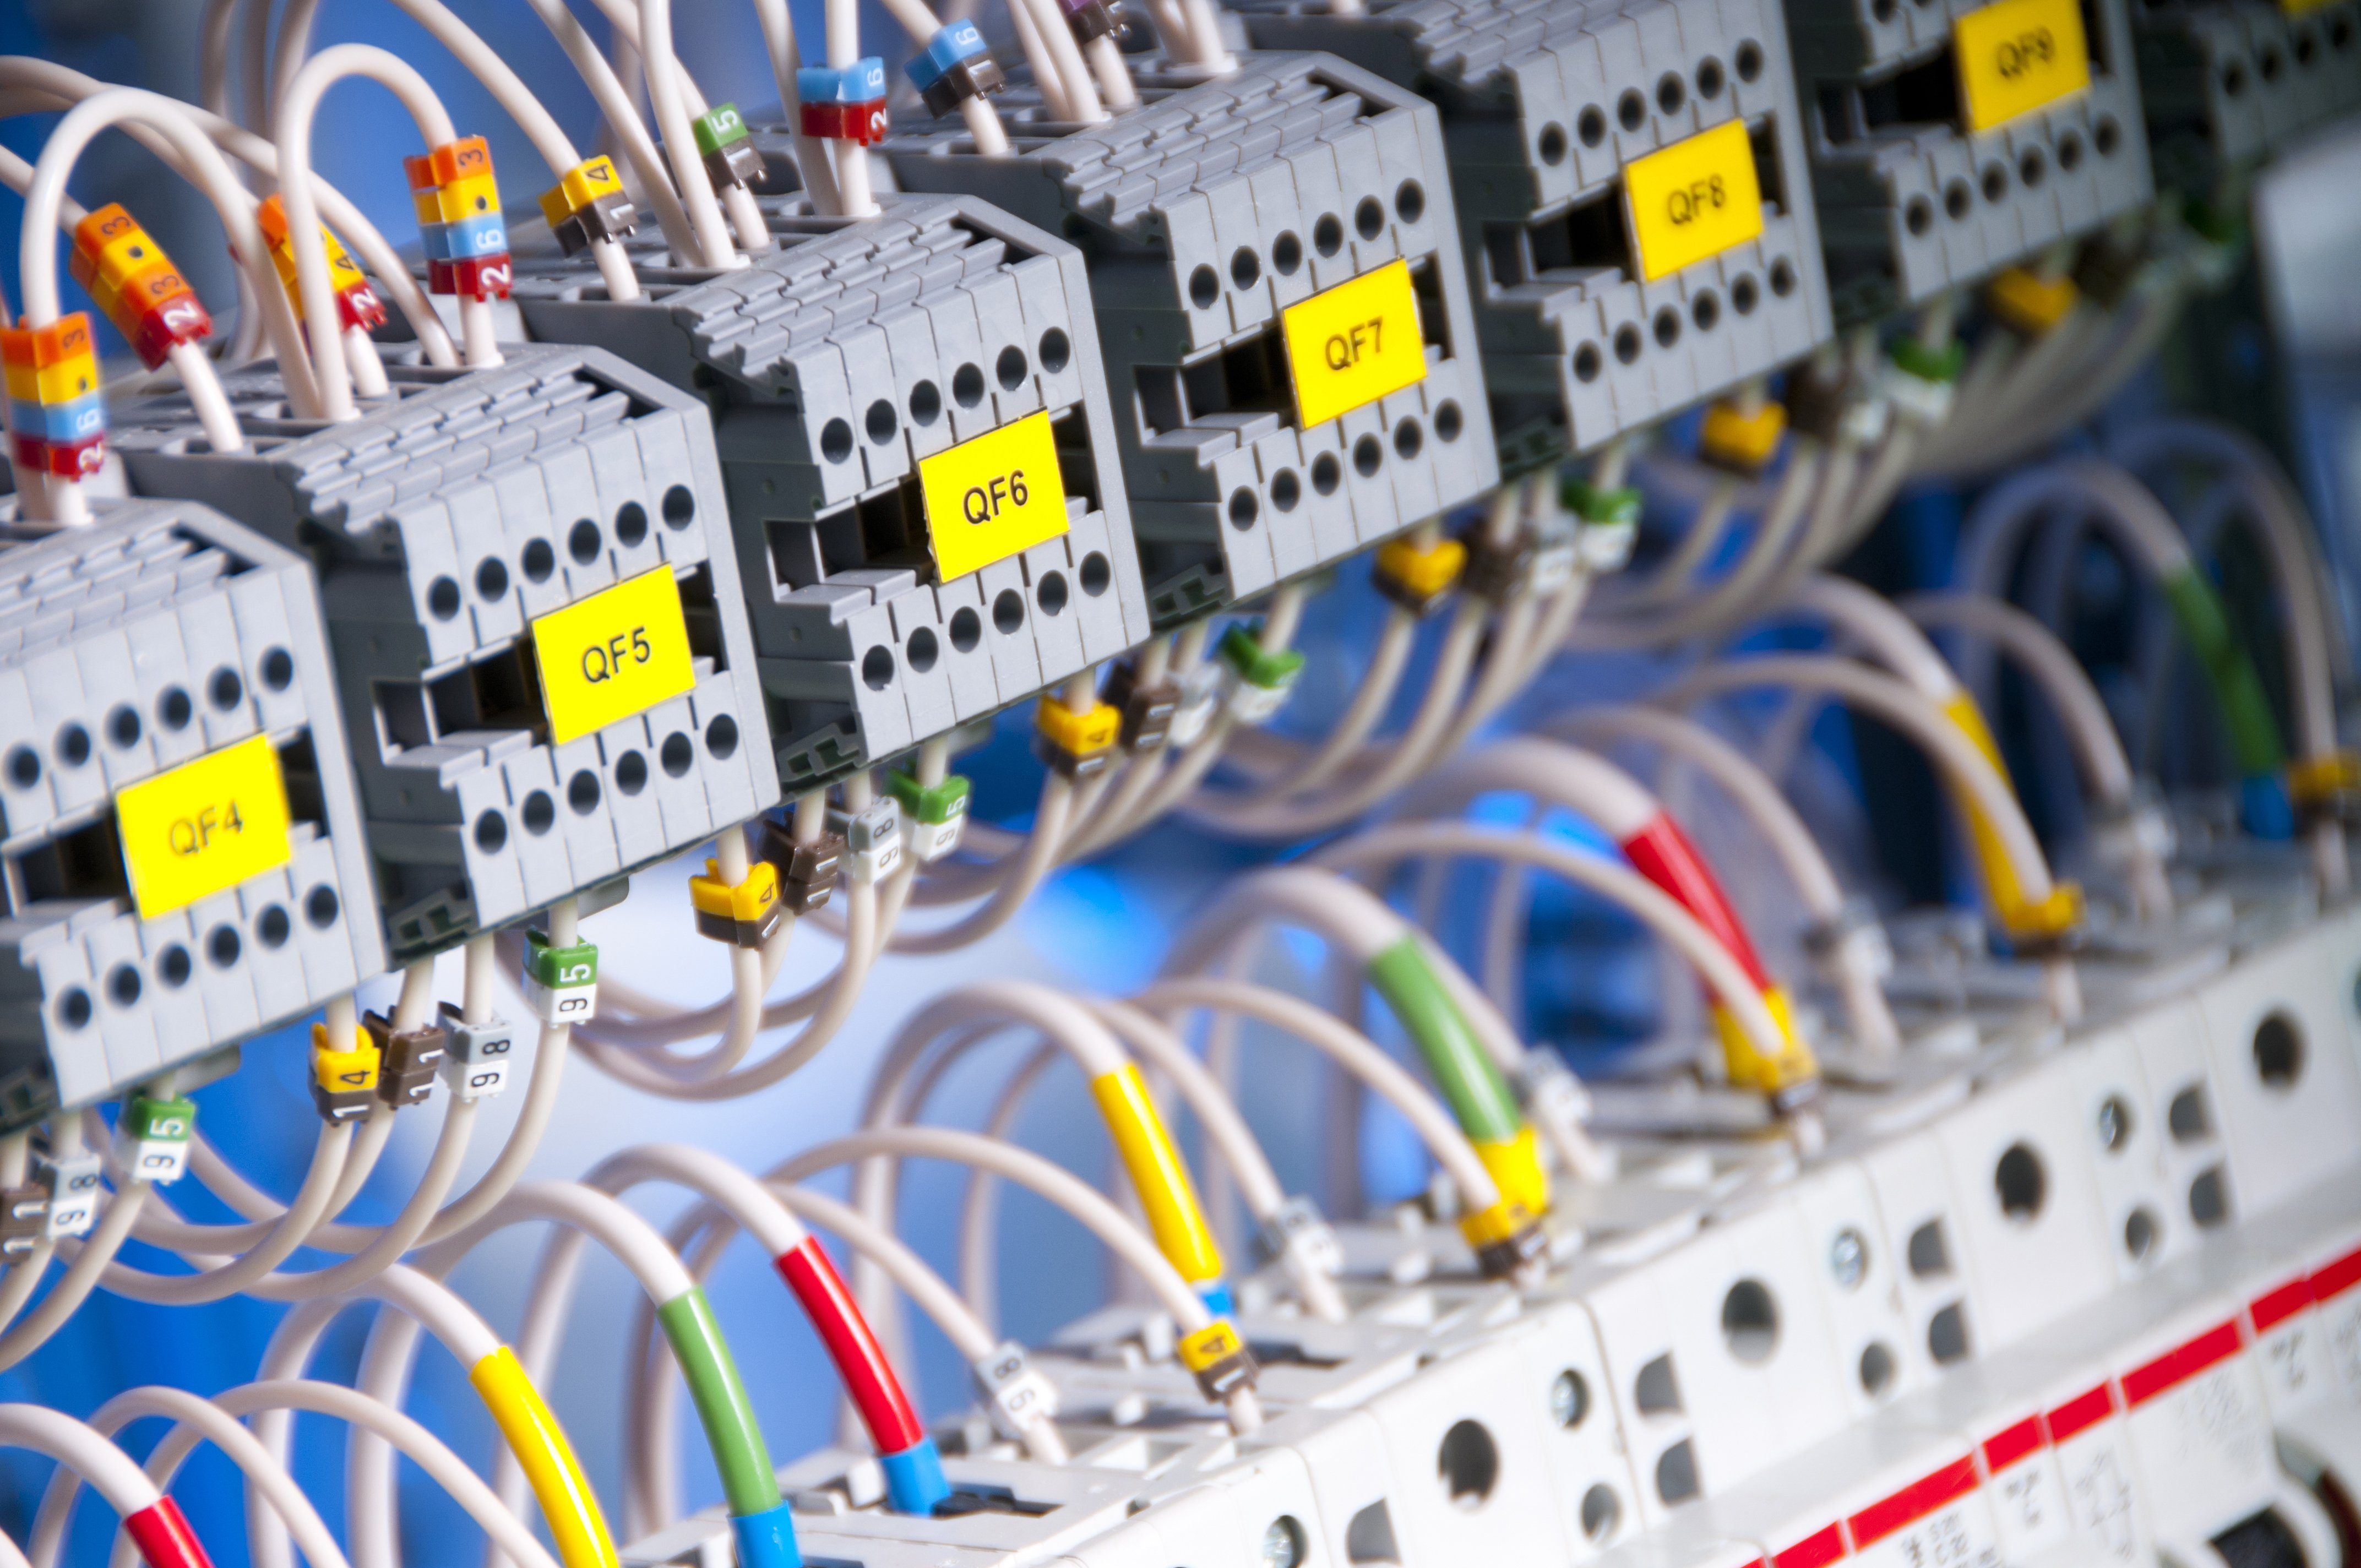 Industrial Electrical Work By The Experts